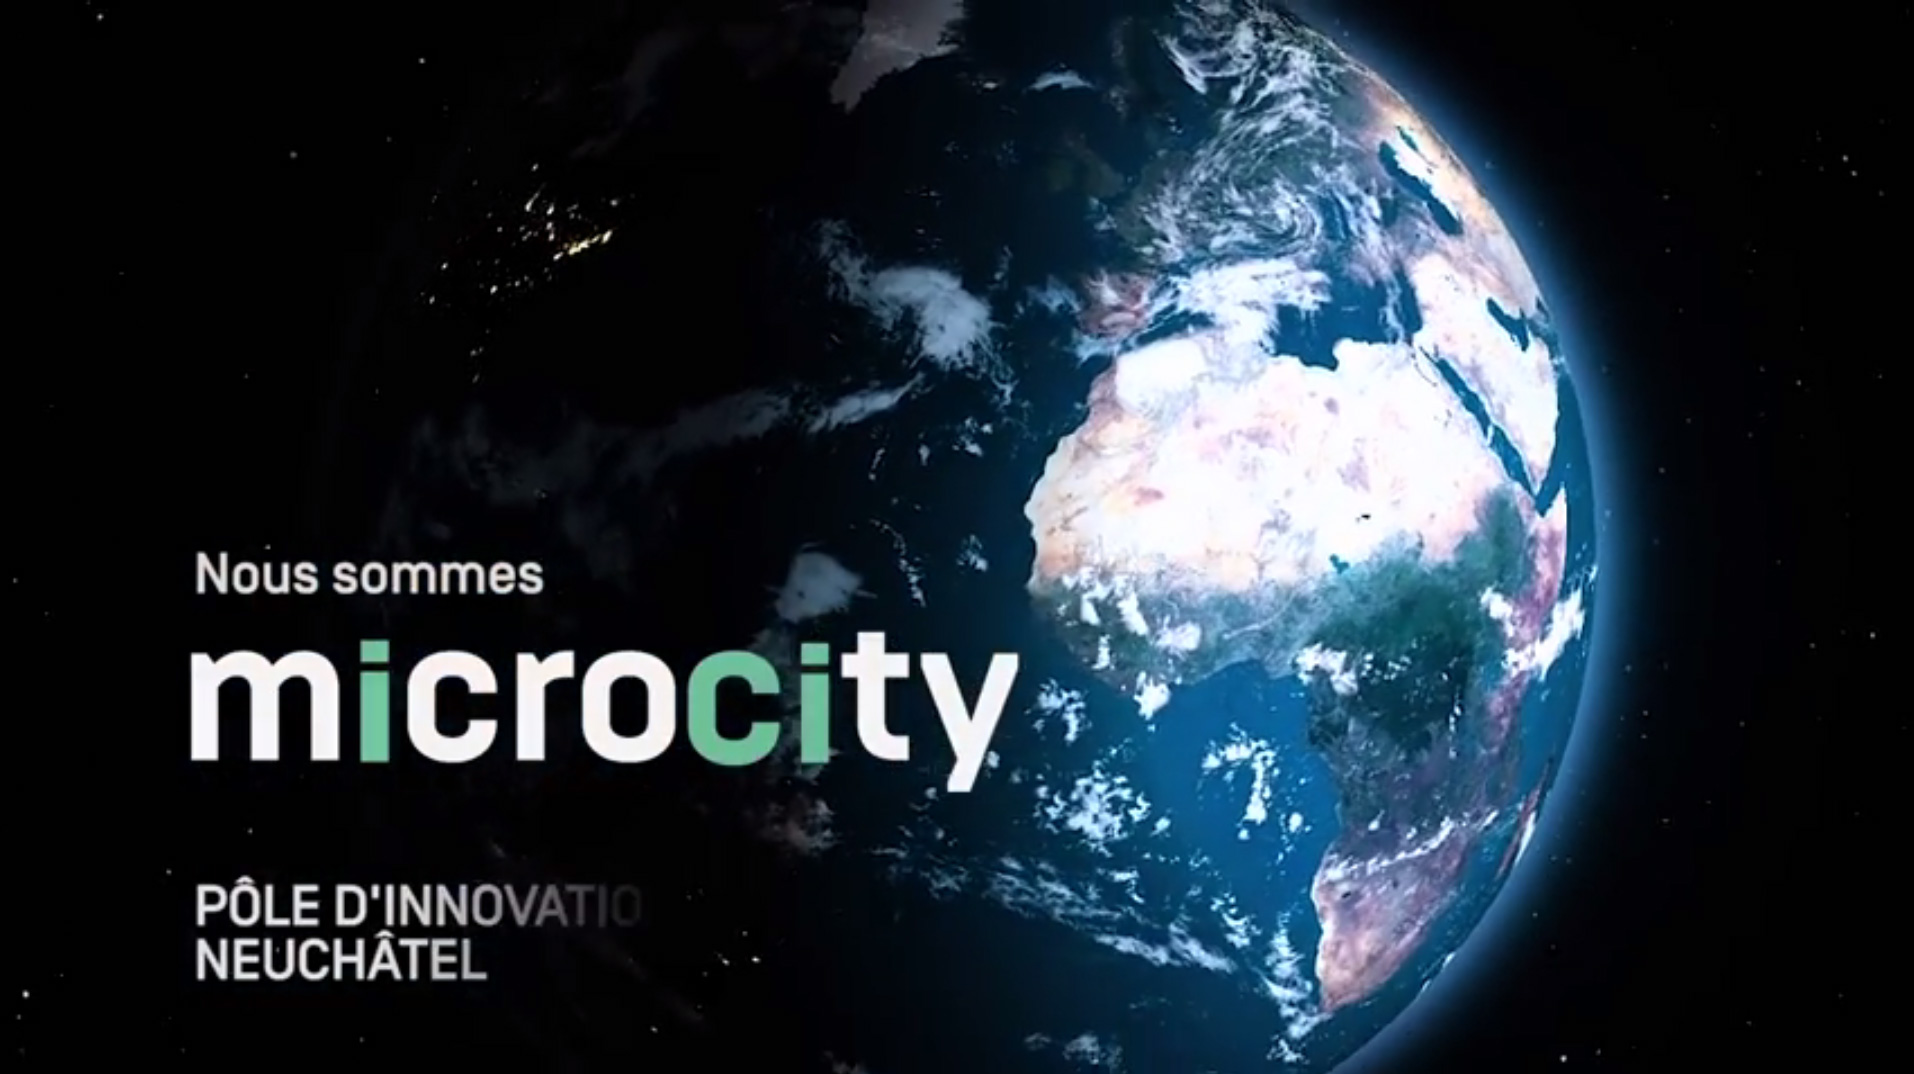 Le logo de Microcity, pole d'innovation neuchâtelois